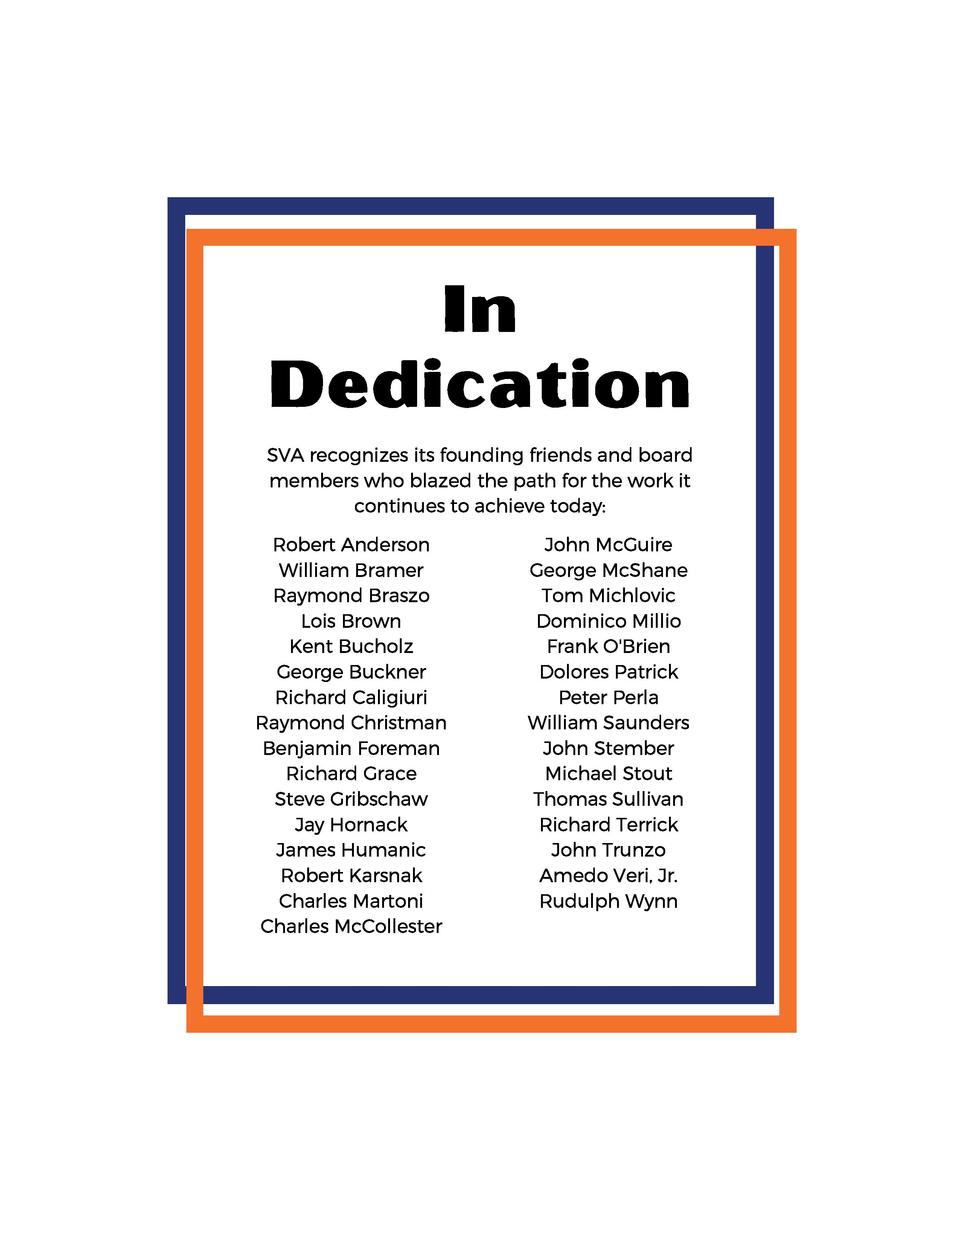 In Dedication SVA recognizes its founding friends and board members who blazed the path for the work it continues to achie...